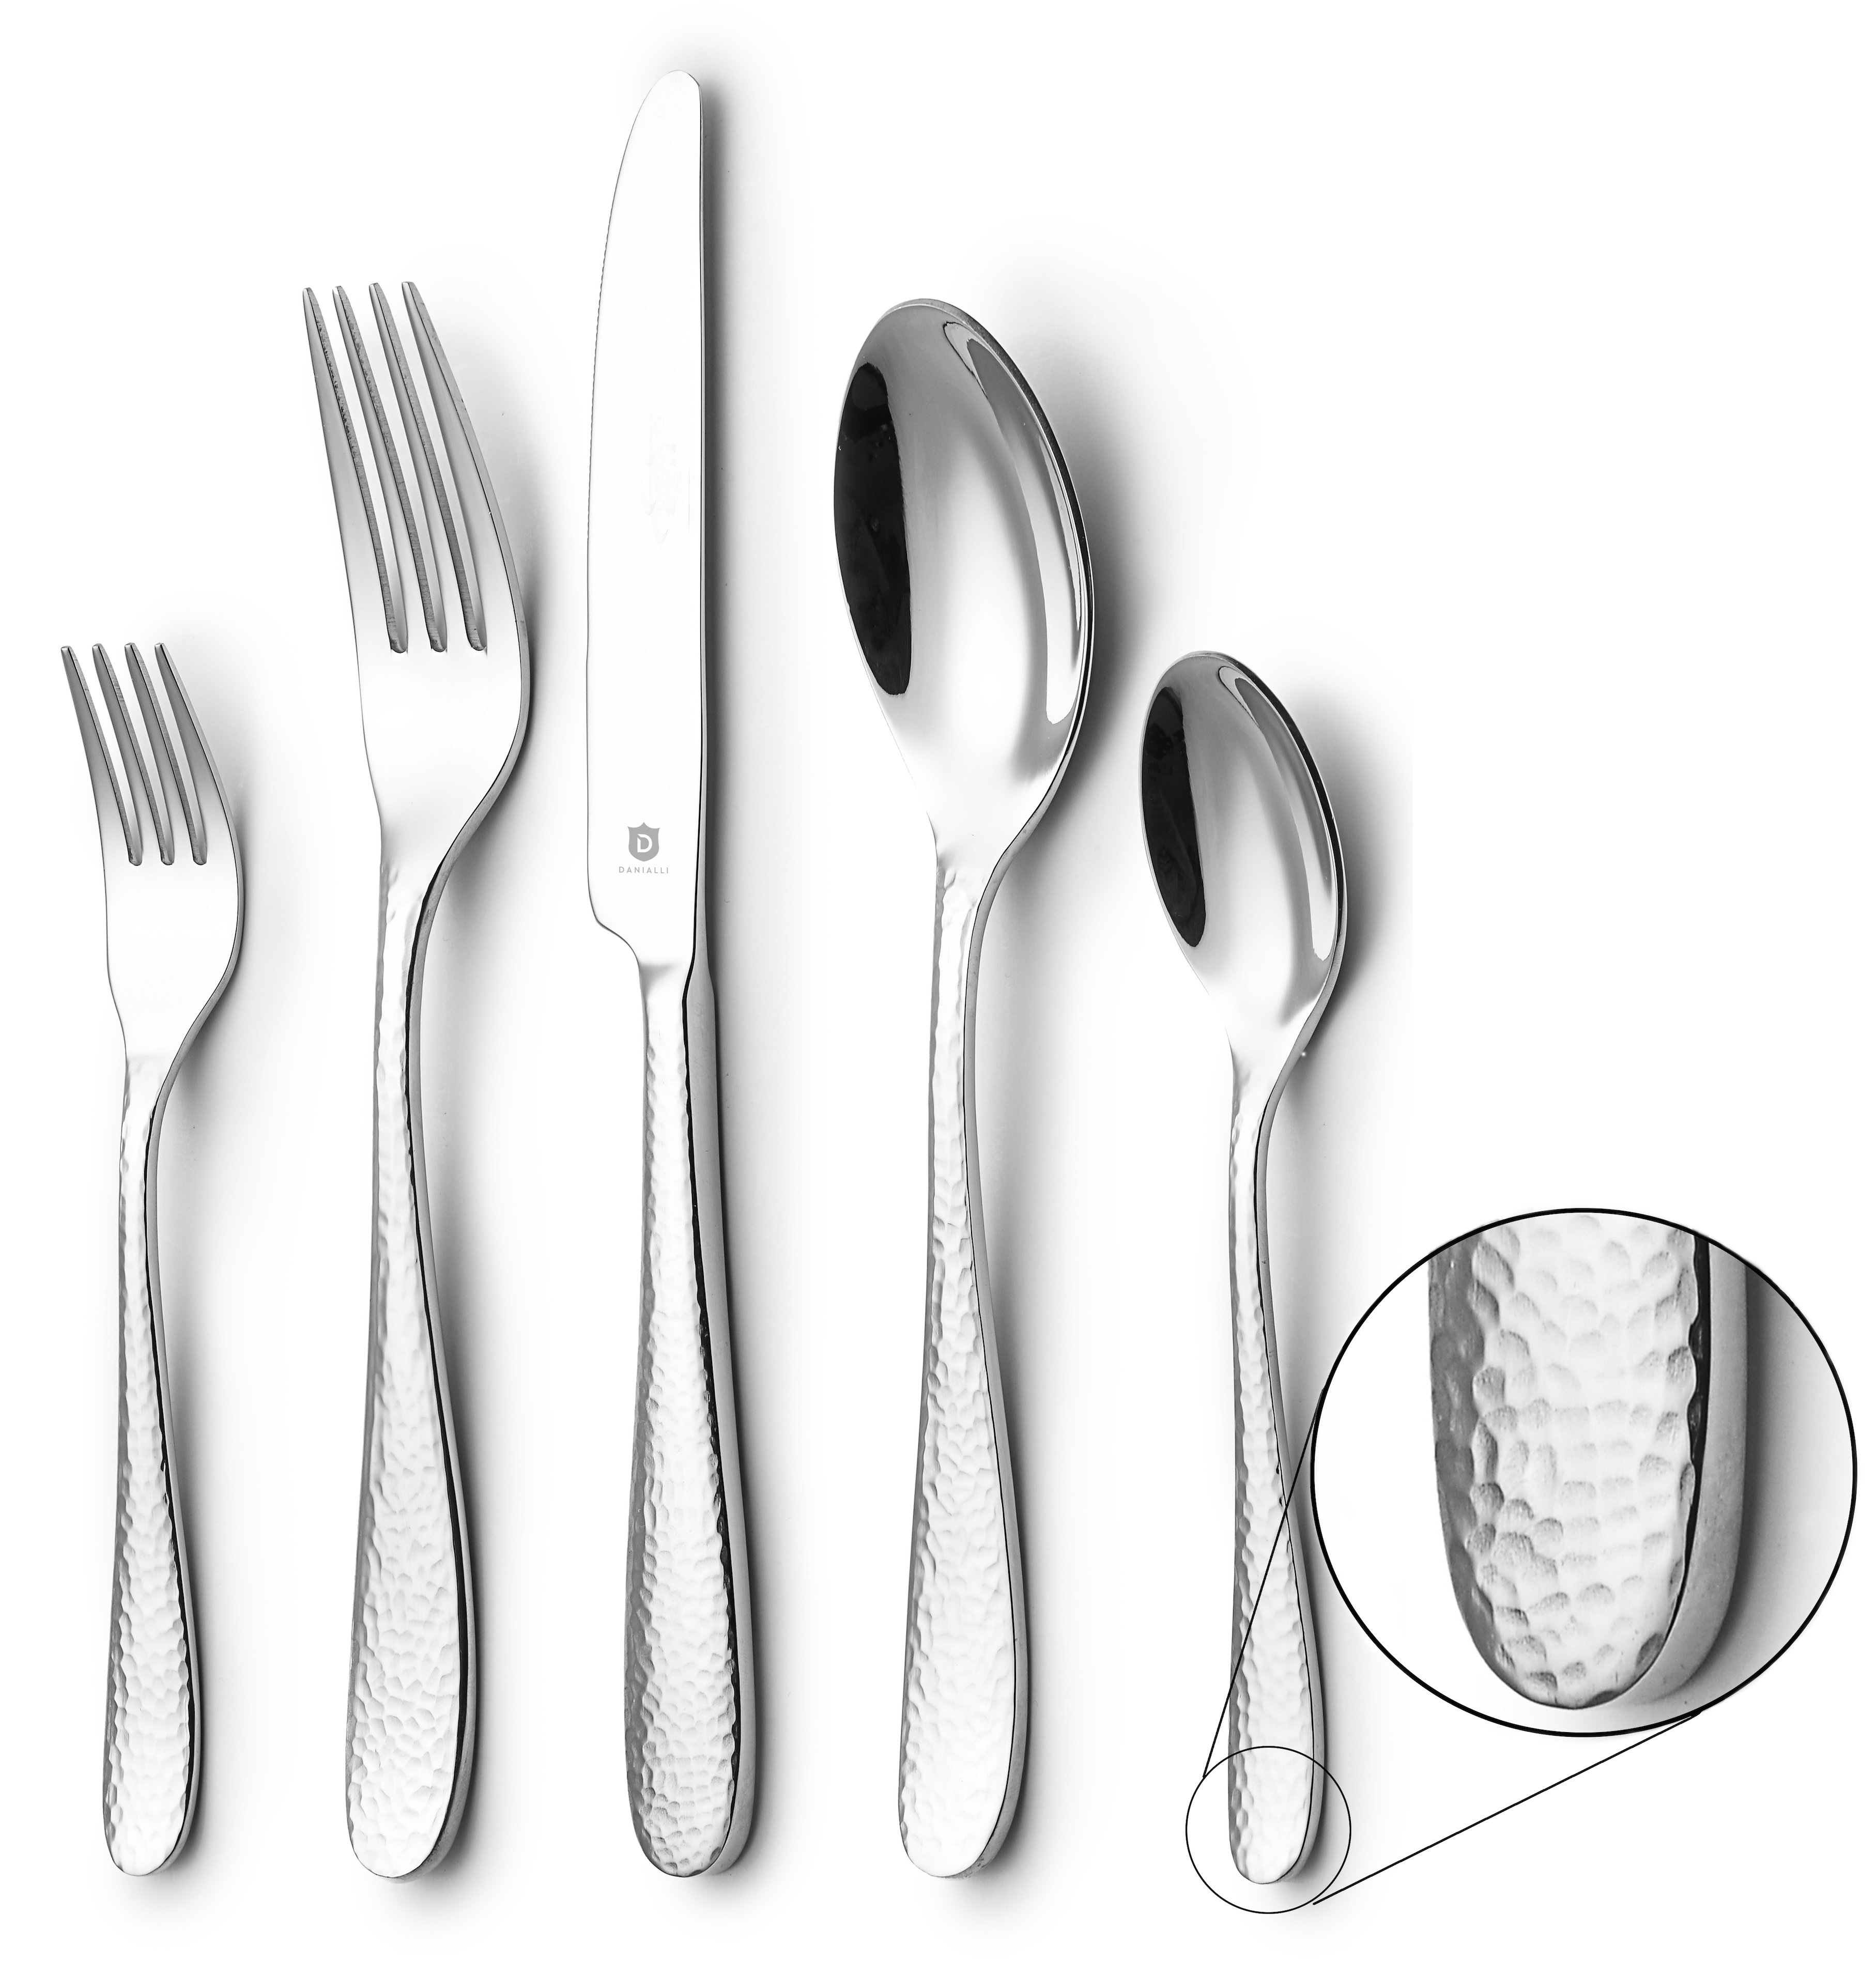 DANIALLI 20-Piece Silverware Set For 4, Modern Hammered Design Flatware Set, 18 10 Stainless Steel Utensils, Include Knife/Fork/Spoon, Mirror Polished Set of Cutlery, Dishwasher Safe